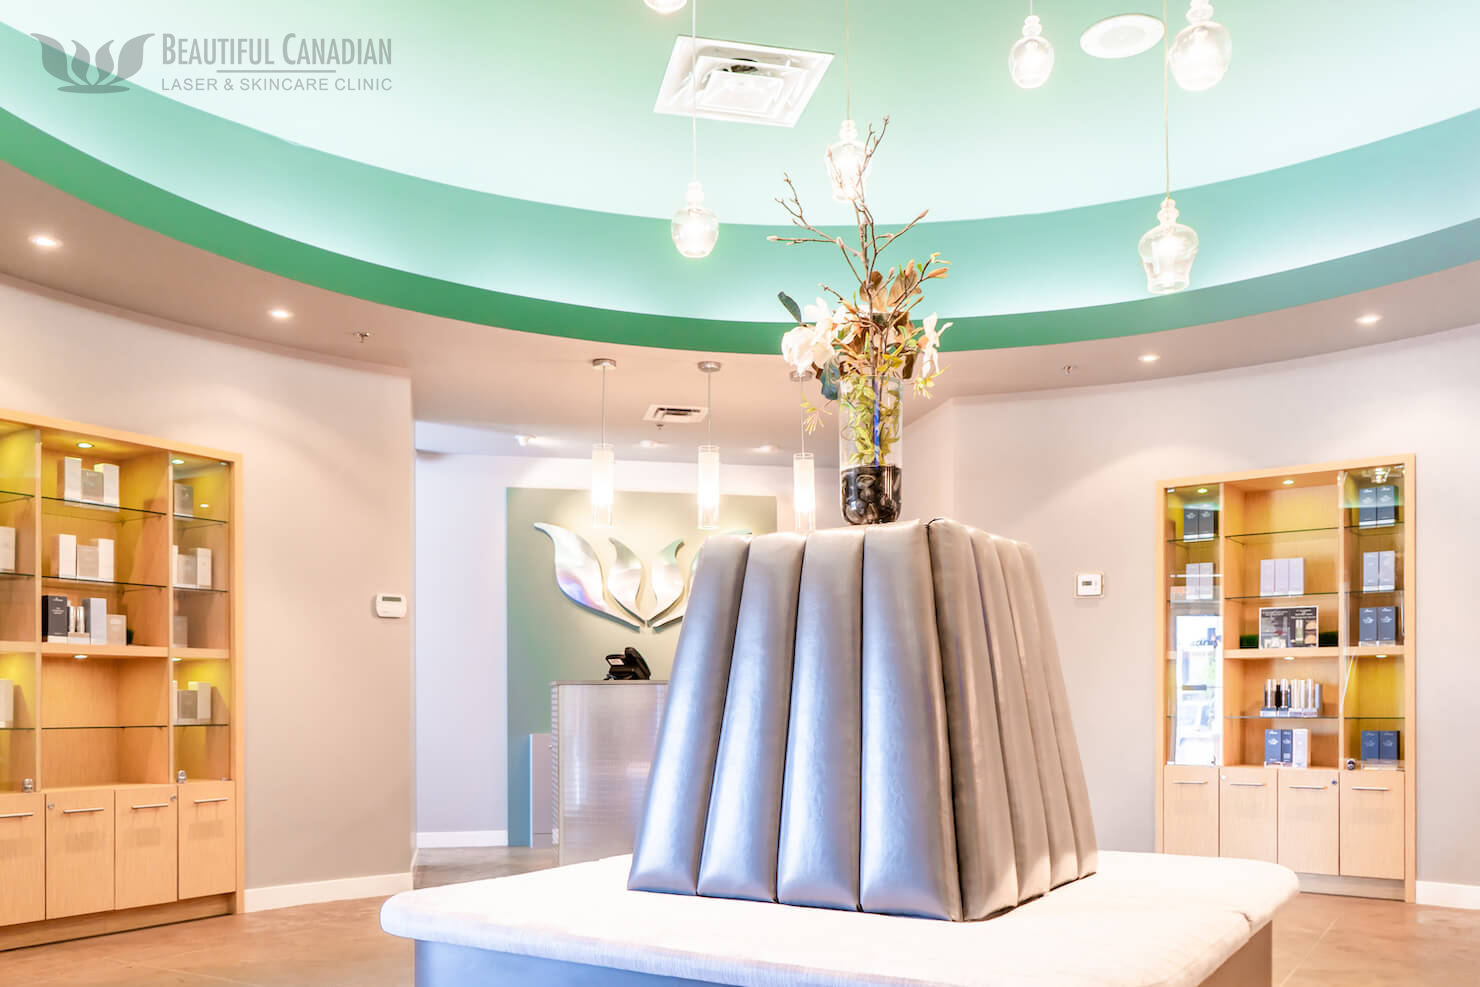 Our medical cosmetic beauty centre reception room